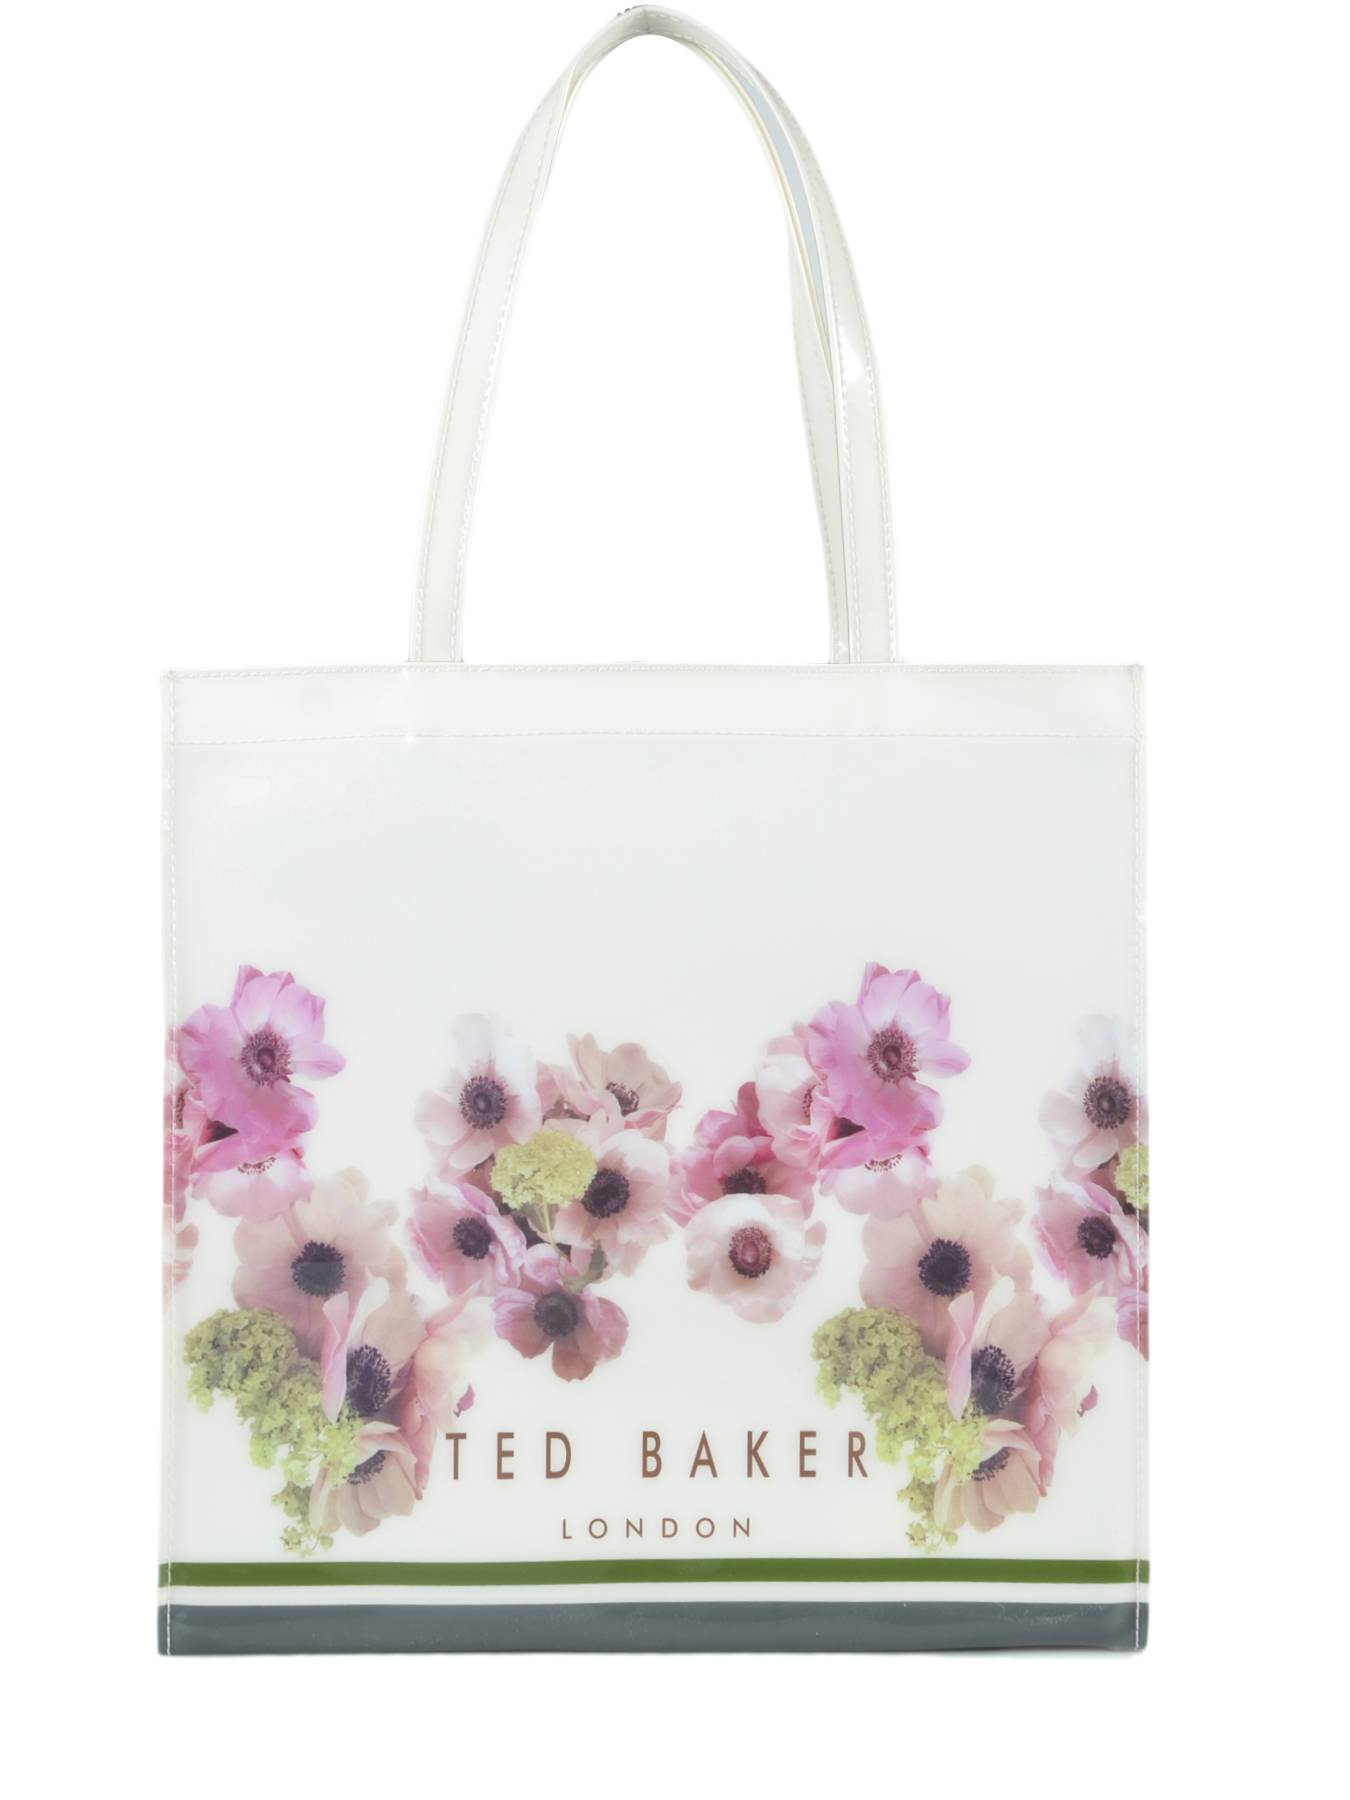 TED BAKER Sac Cabas Iconic Flower Ted Baker Blanc